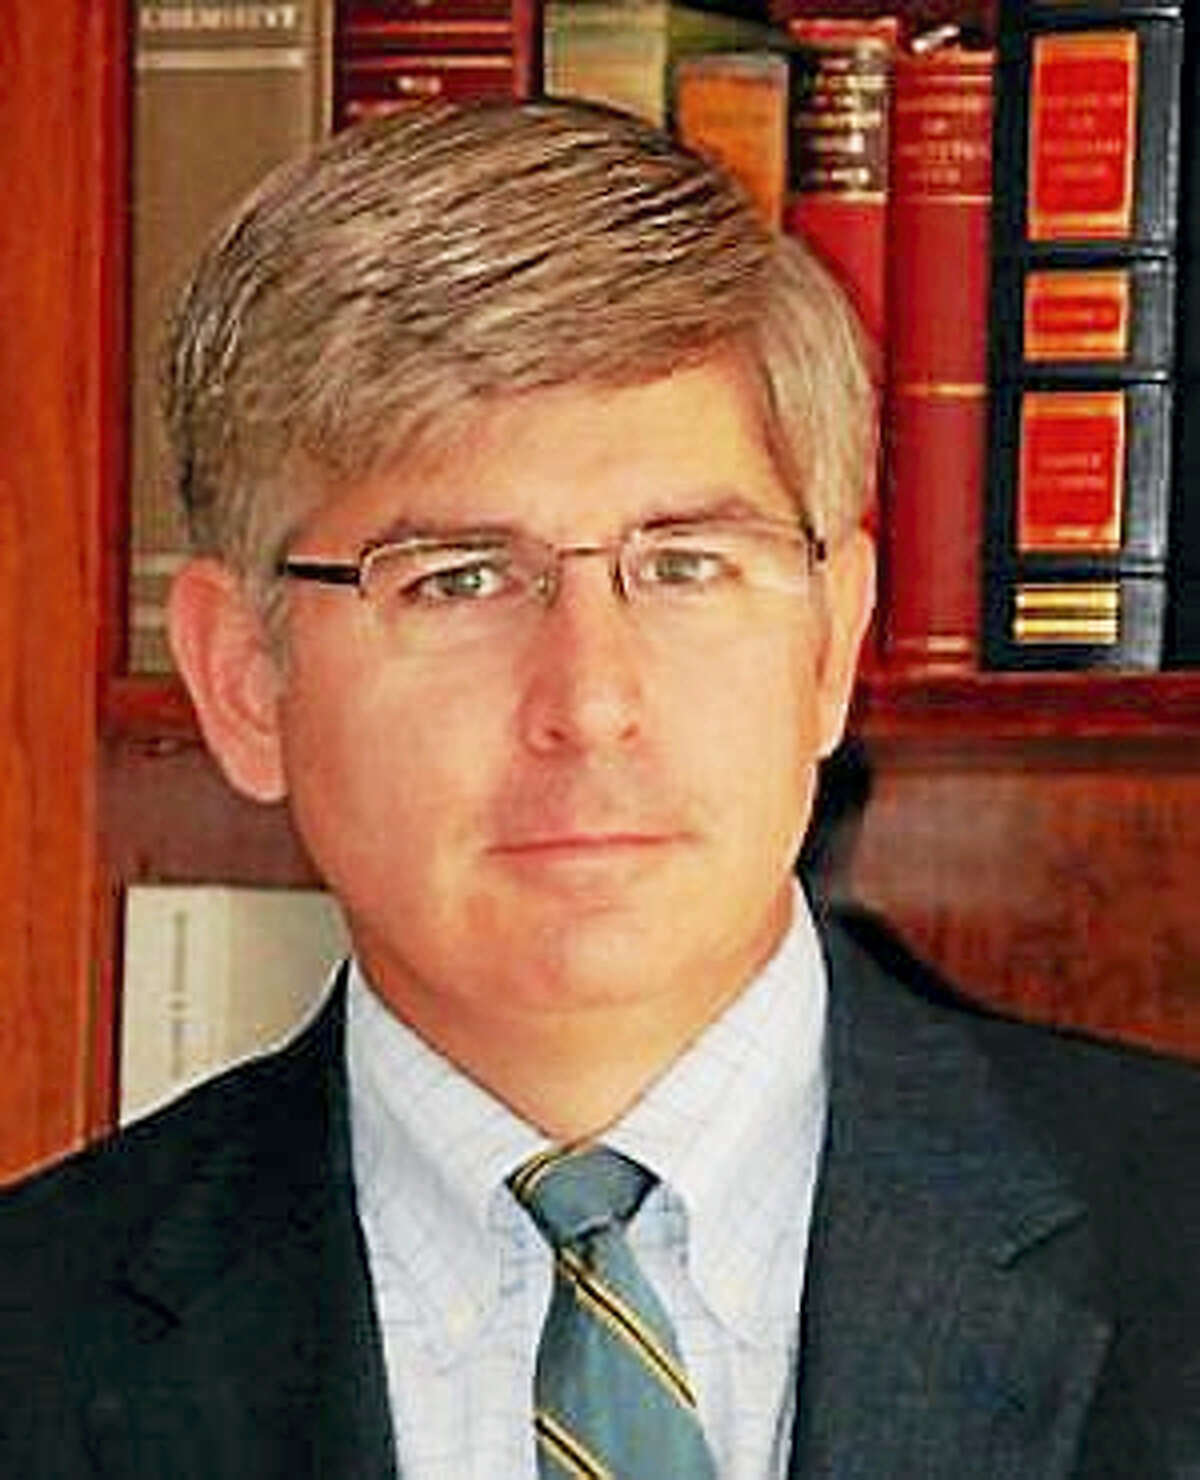 Dr. James Gill, Connecticut's chief medical examiner